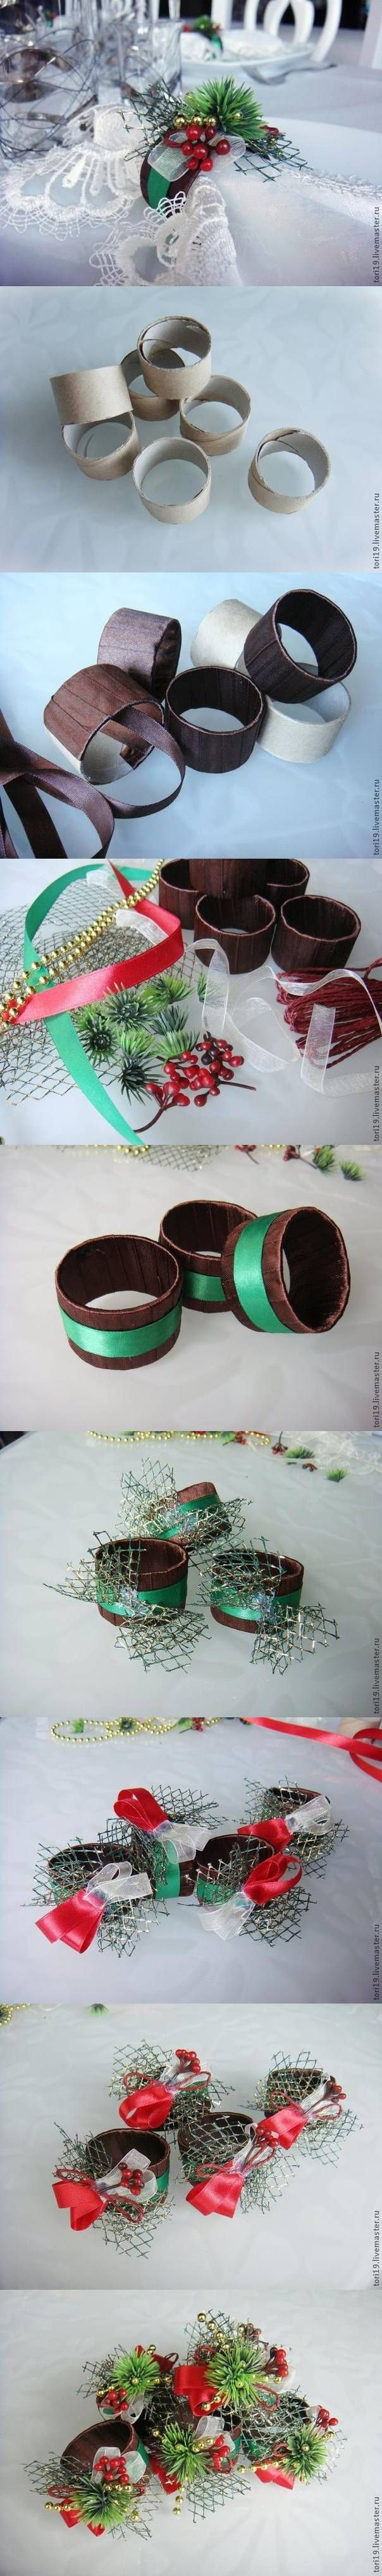 DIY Toilet Roll Custom Napkin Rings